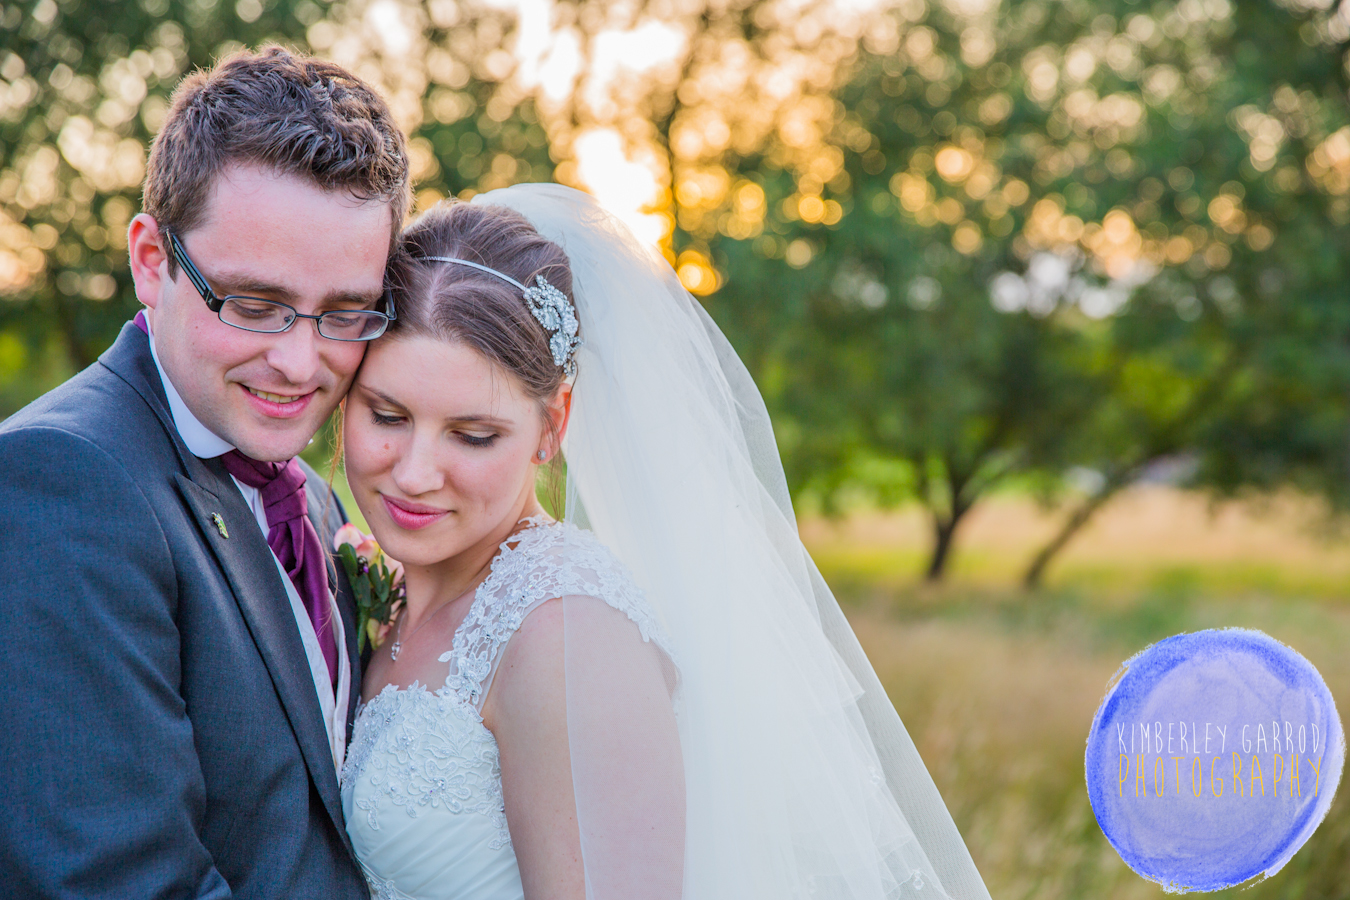 Wedding photographer East Horton Kimberley Garrod